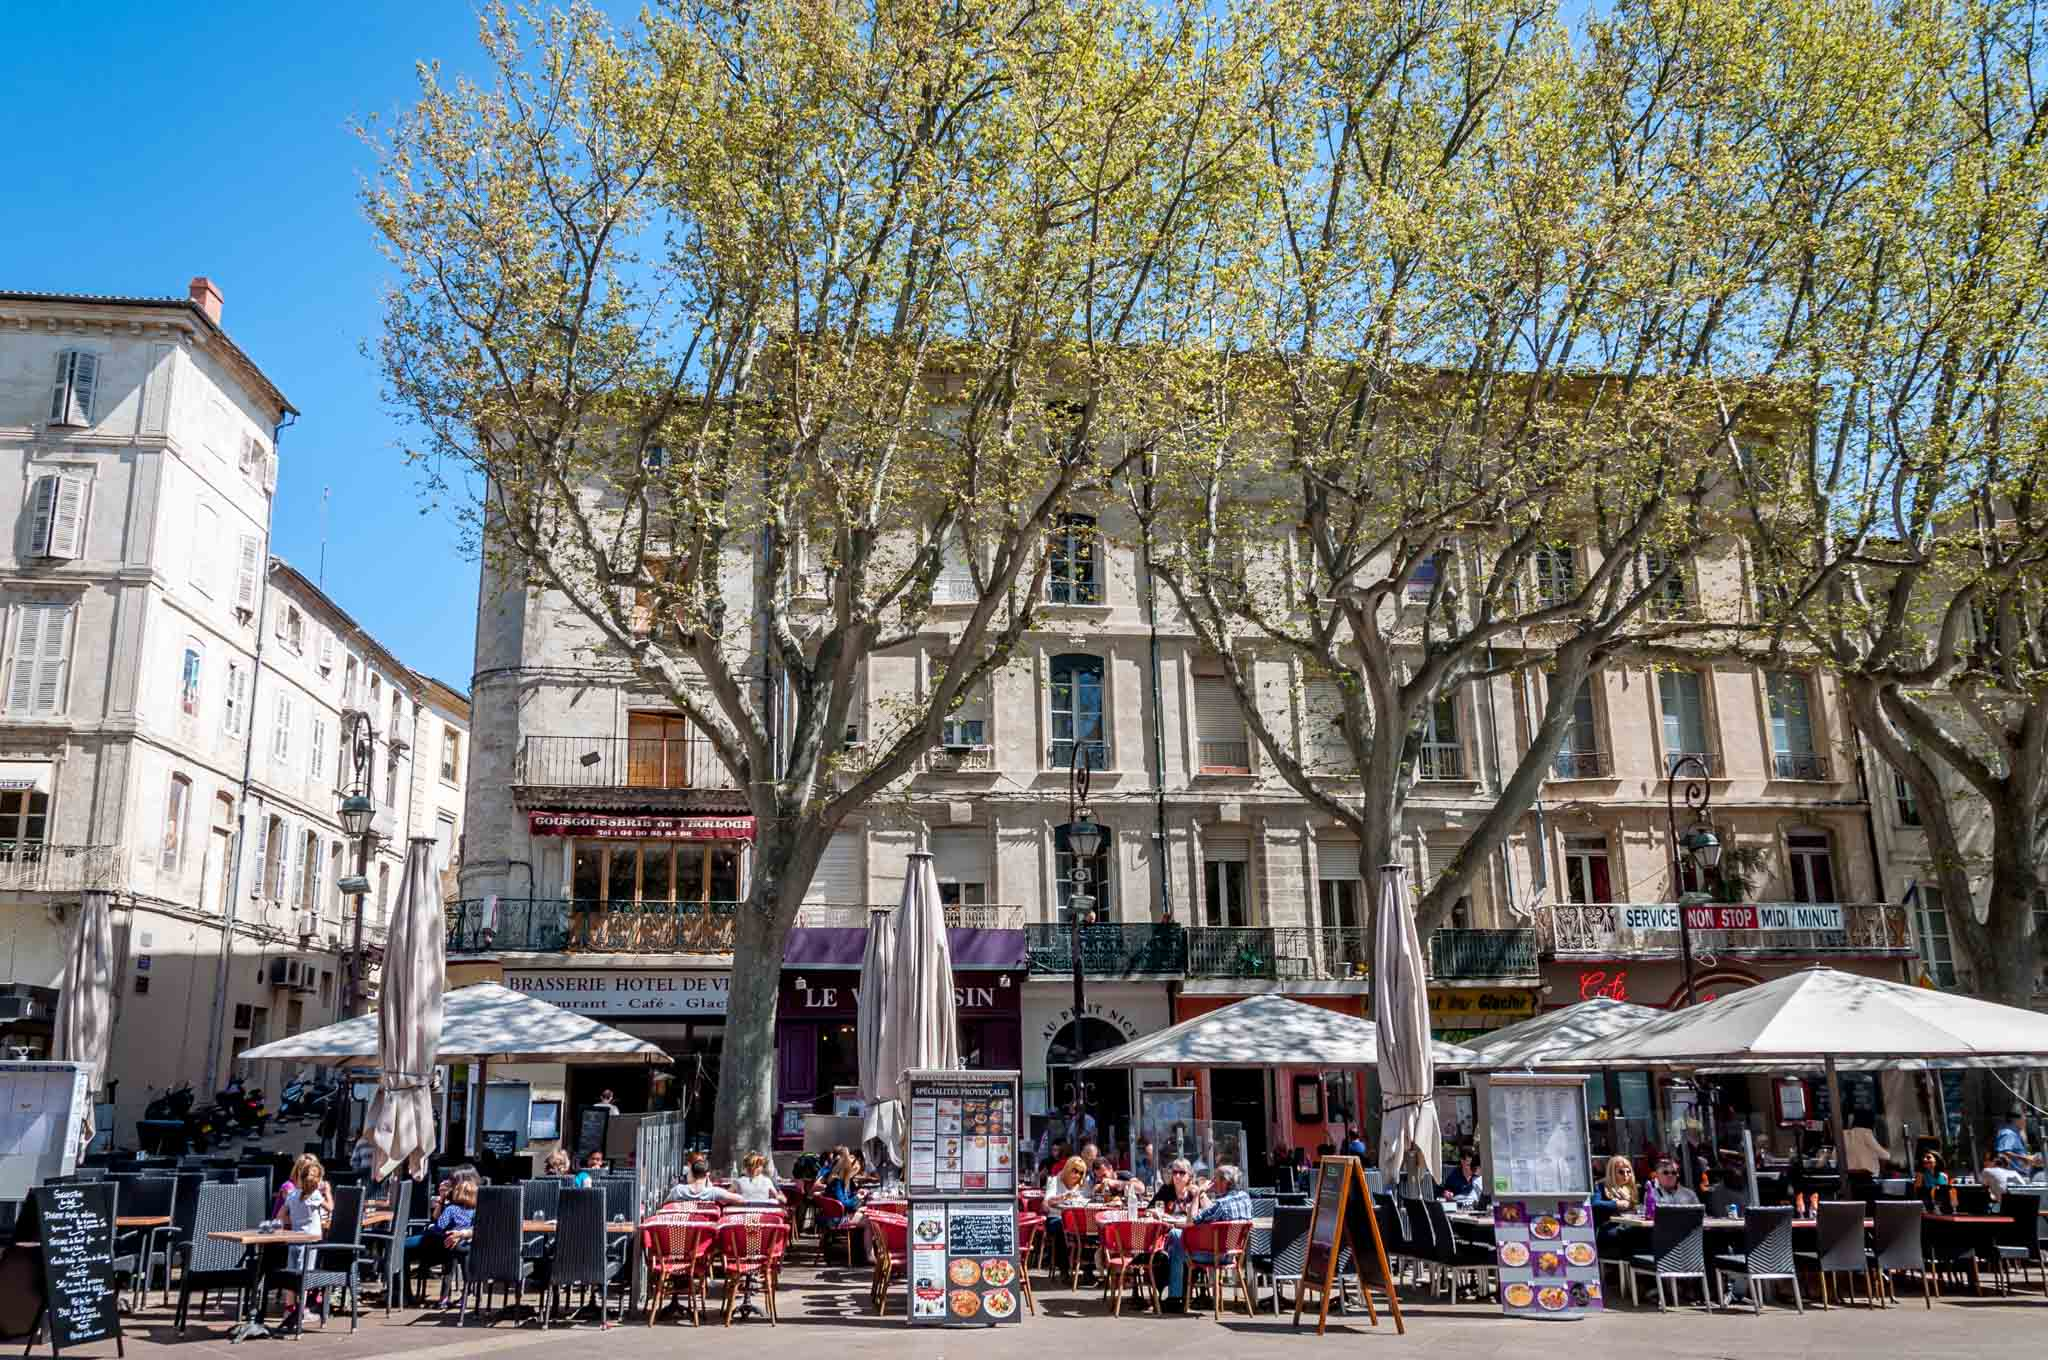 A visit to Place de l'Horloge is what to do in Avignon, France